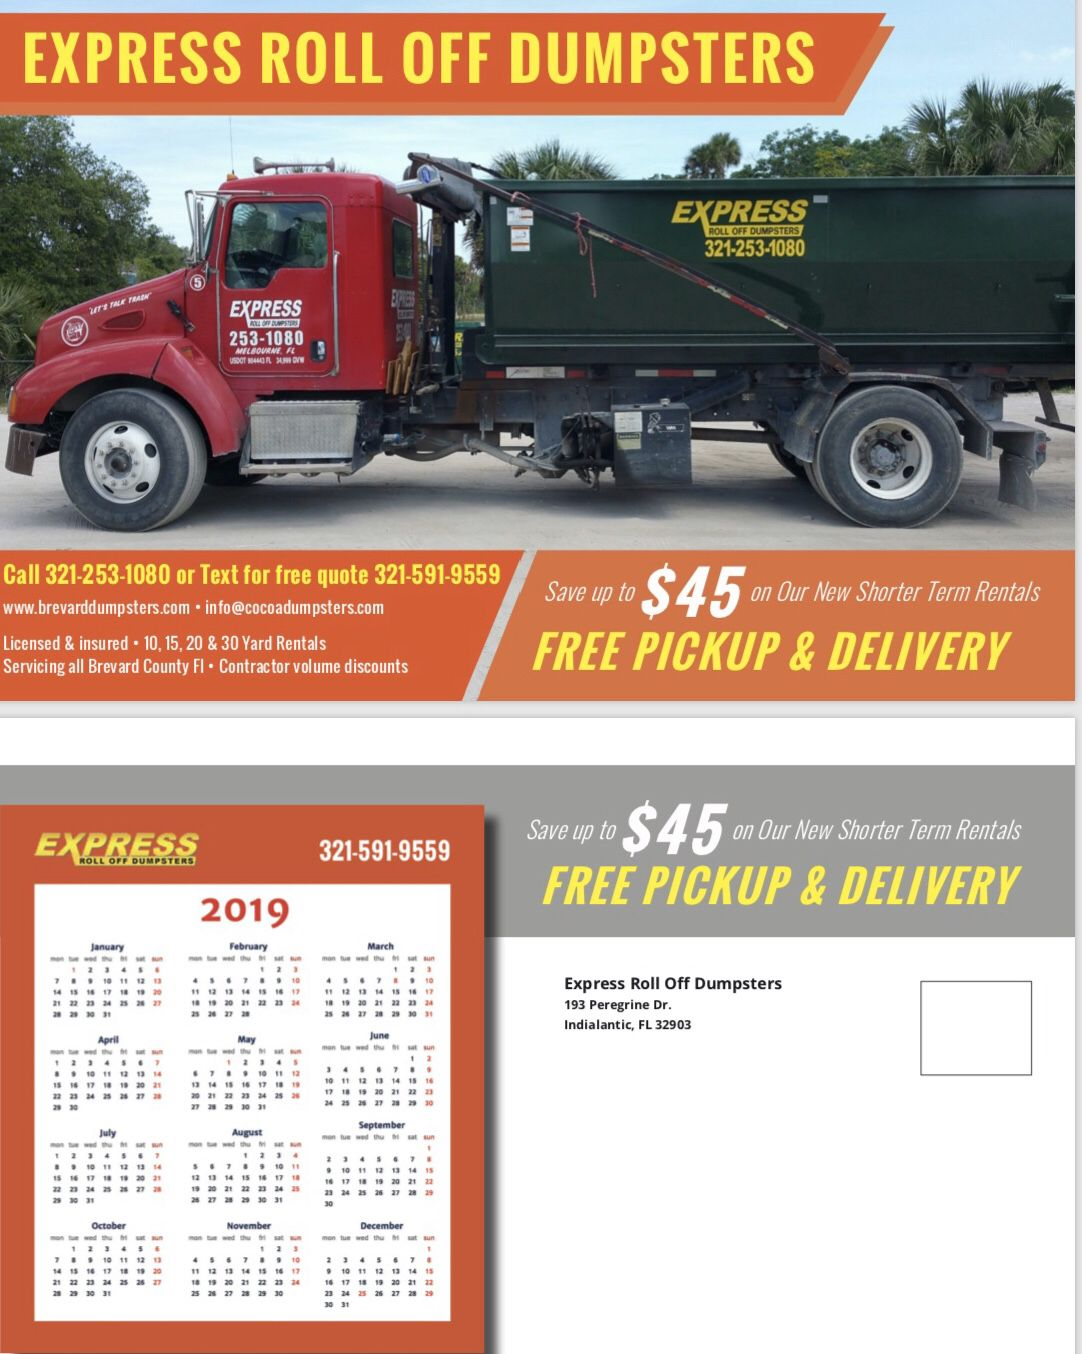 Construction Dumpsters For Rent Express Roll Off Palm Bay Florida Dumpster Rental Roll Off Dumpster Dumpsters